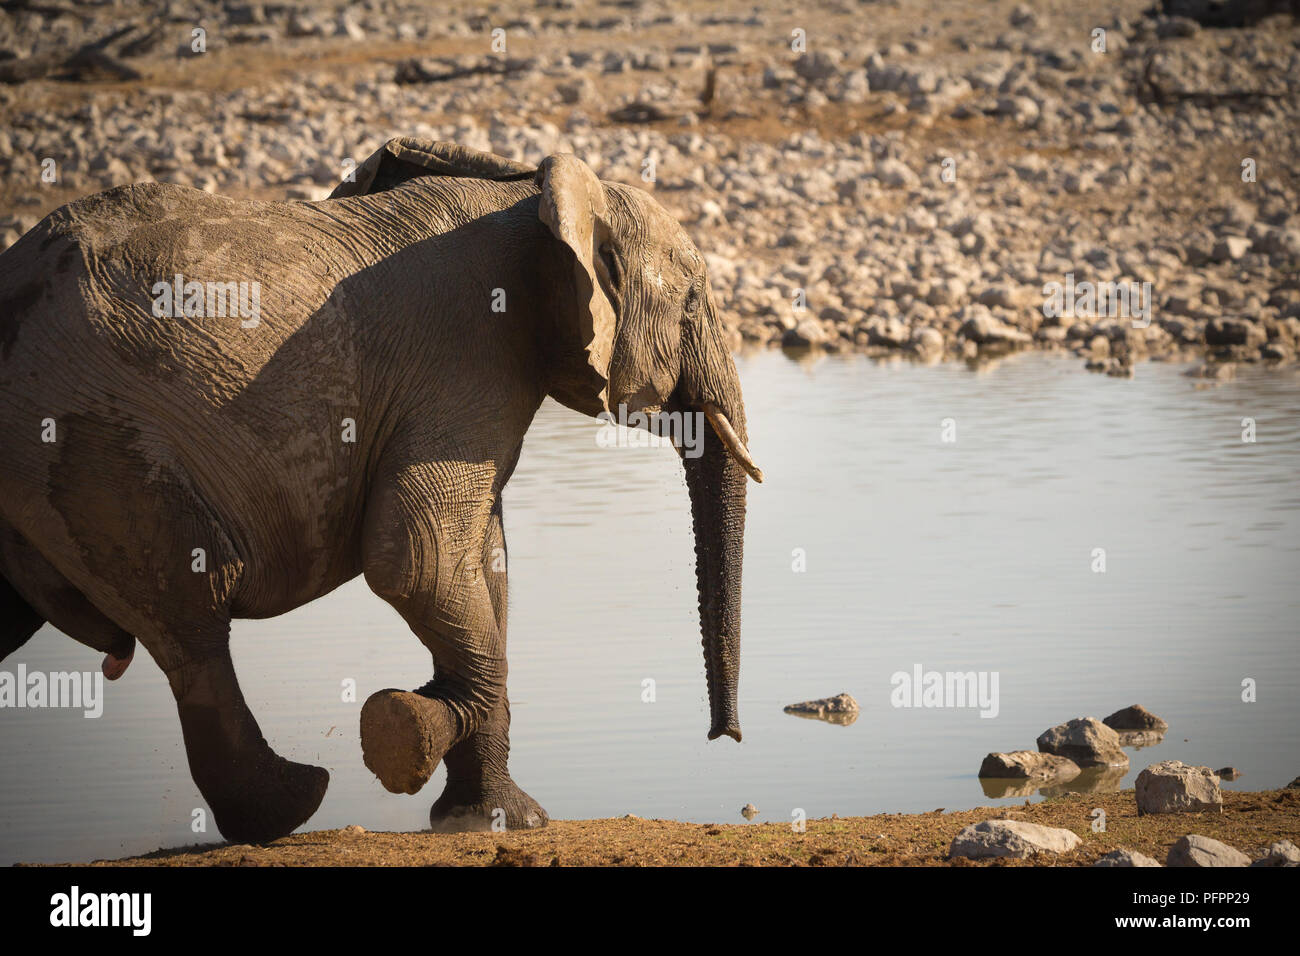 elephant (Loxodonta africana) running or at a trot catching up to the others at Okaukuejo waterhole in Etosha National Park Namibia Stock Photo